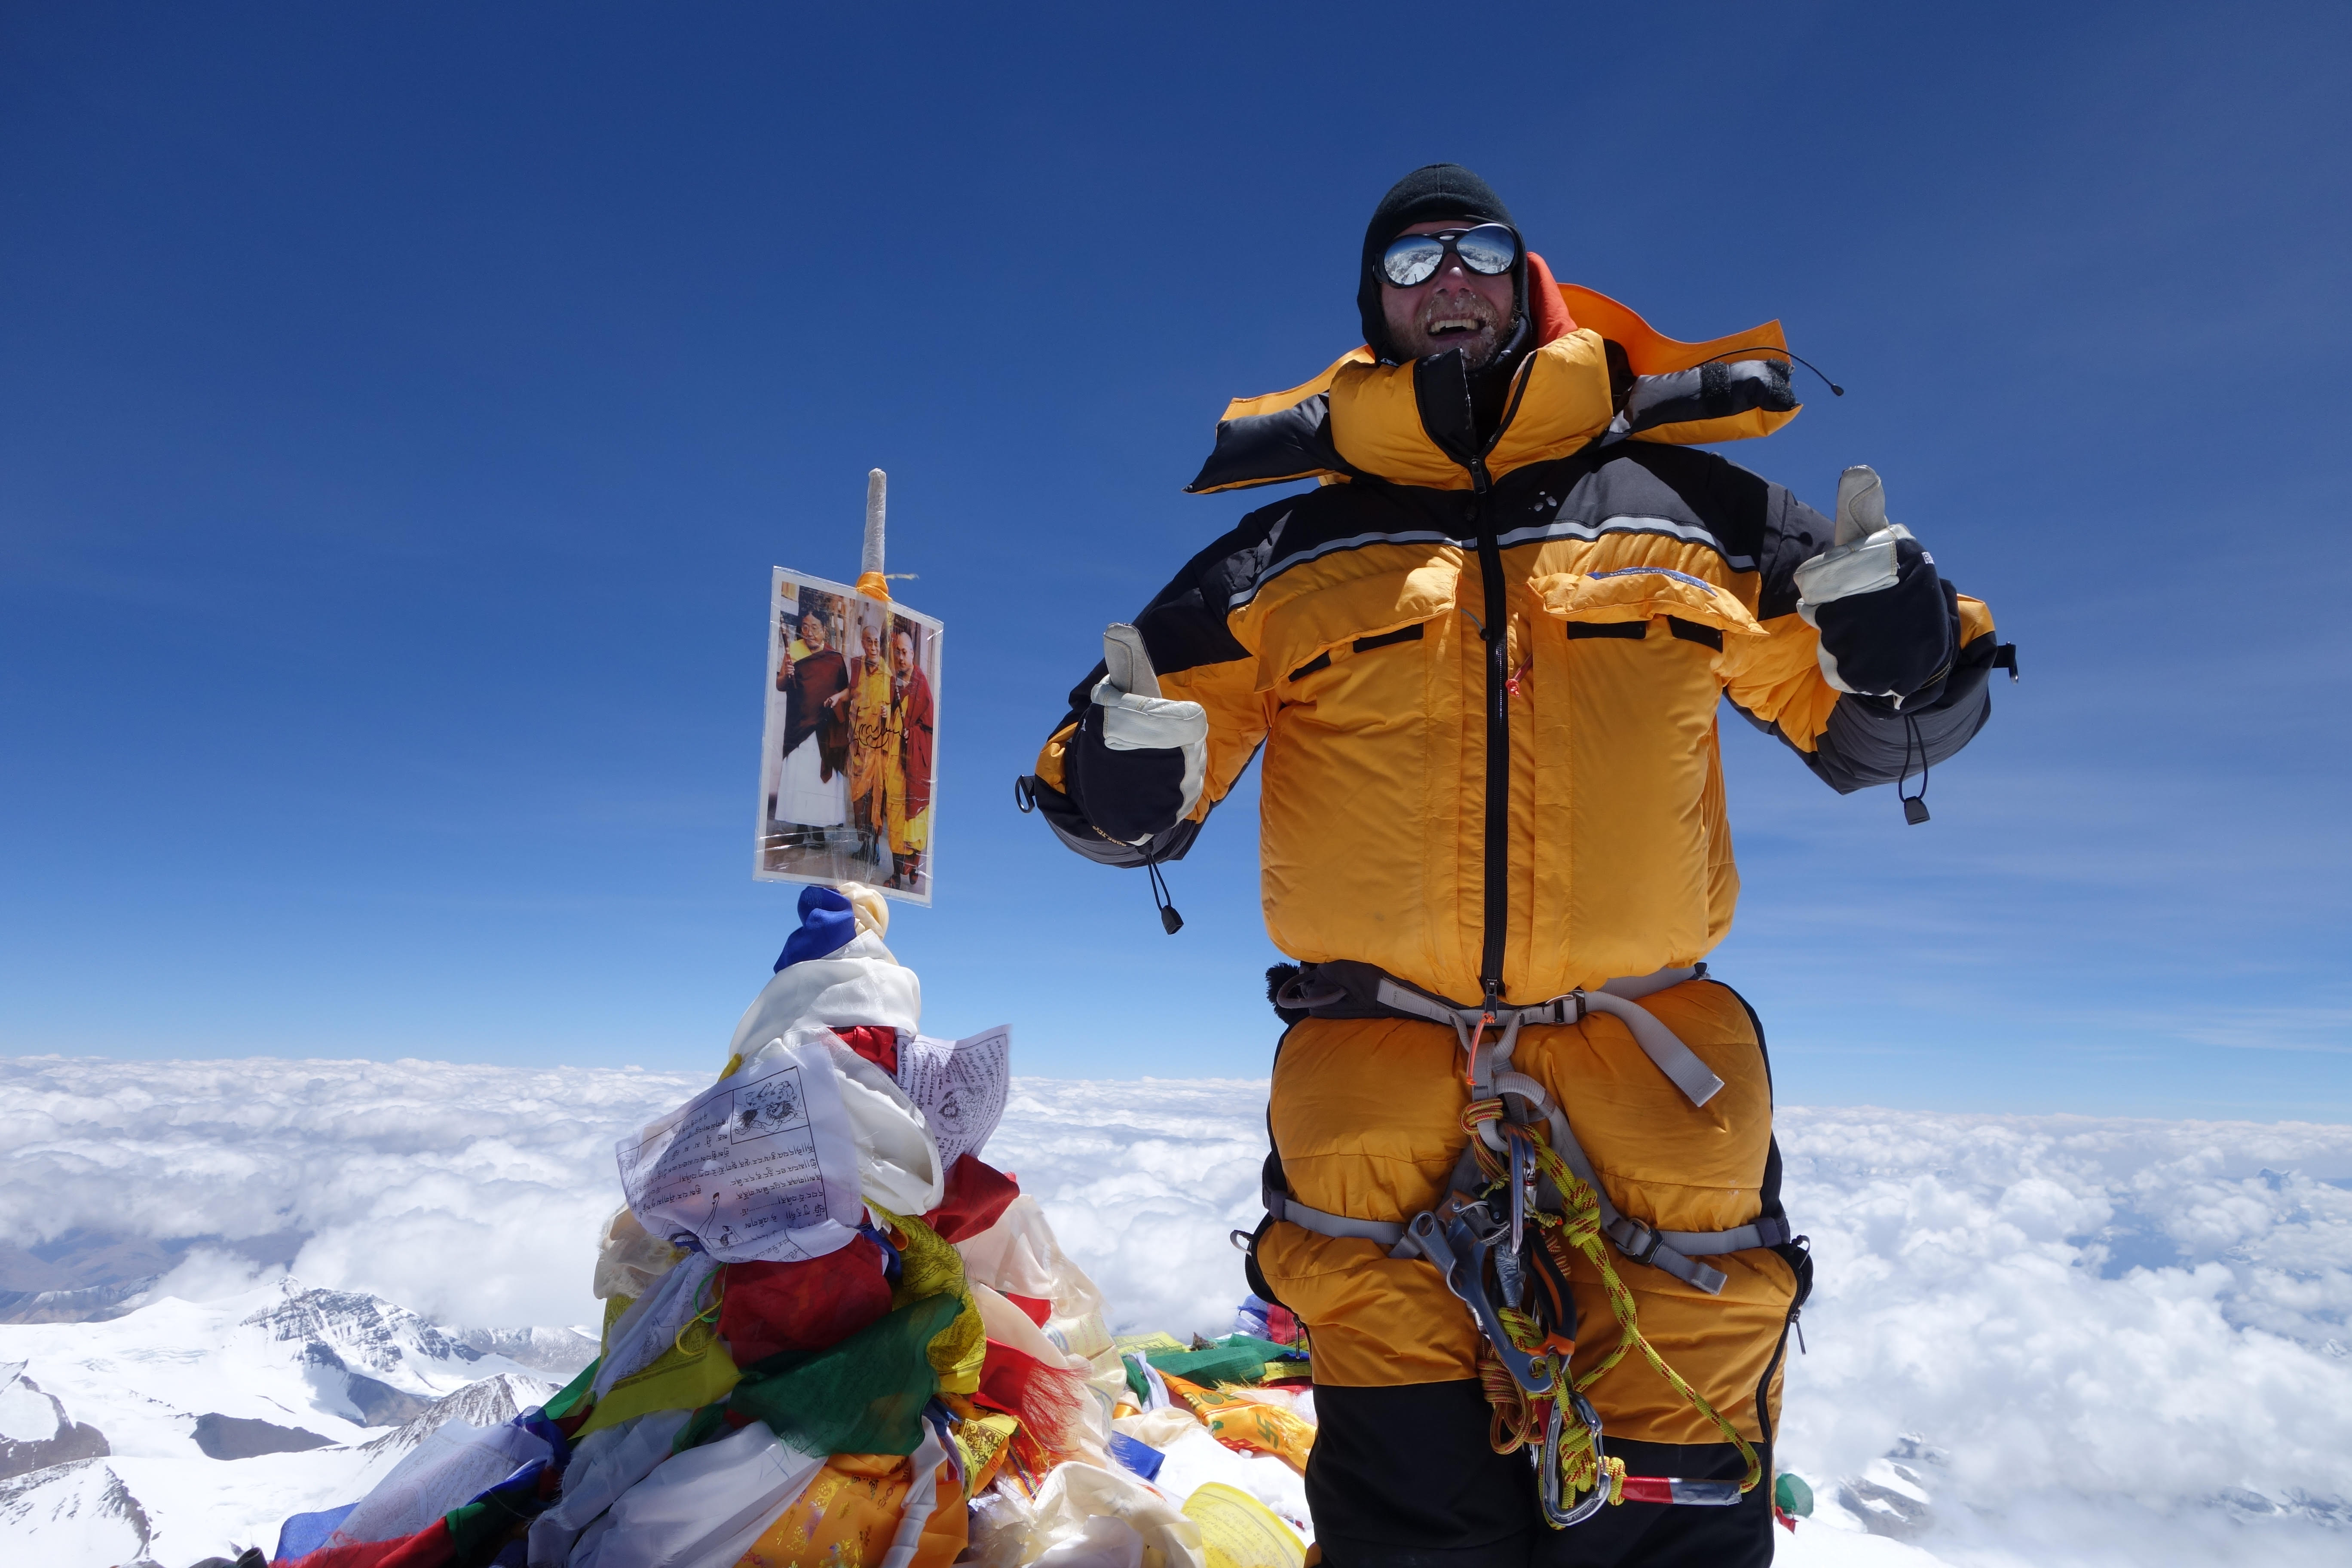 Featuring Fireside Chat on Summiting Everest with FN'er James Brooman